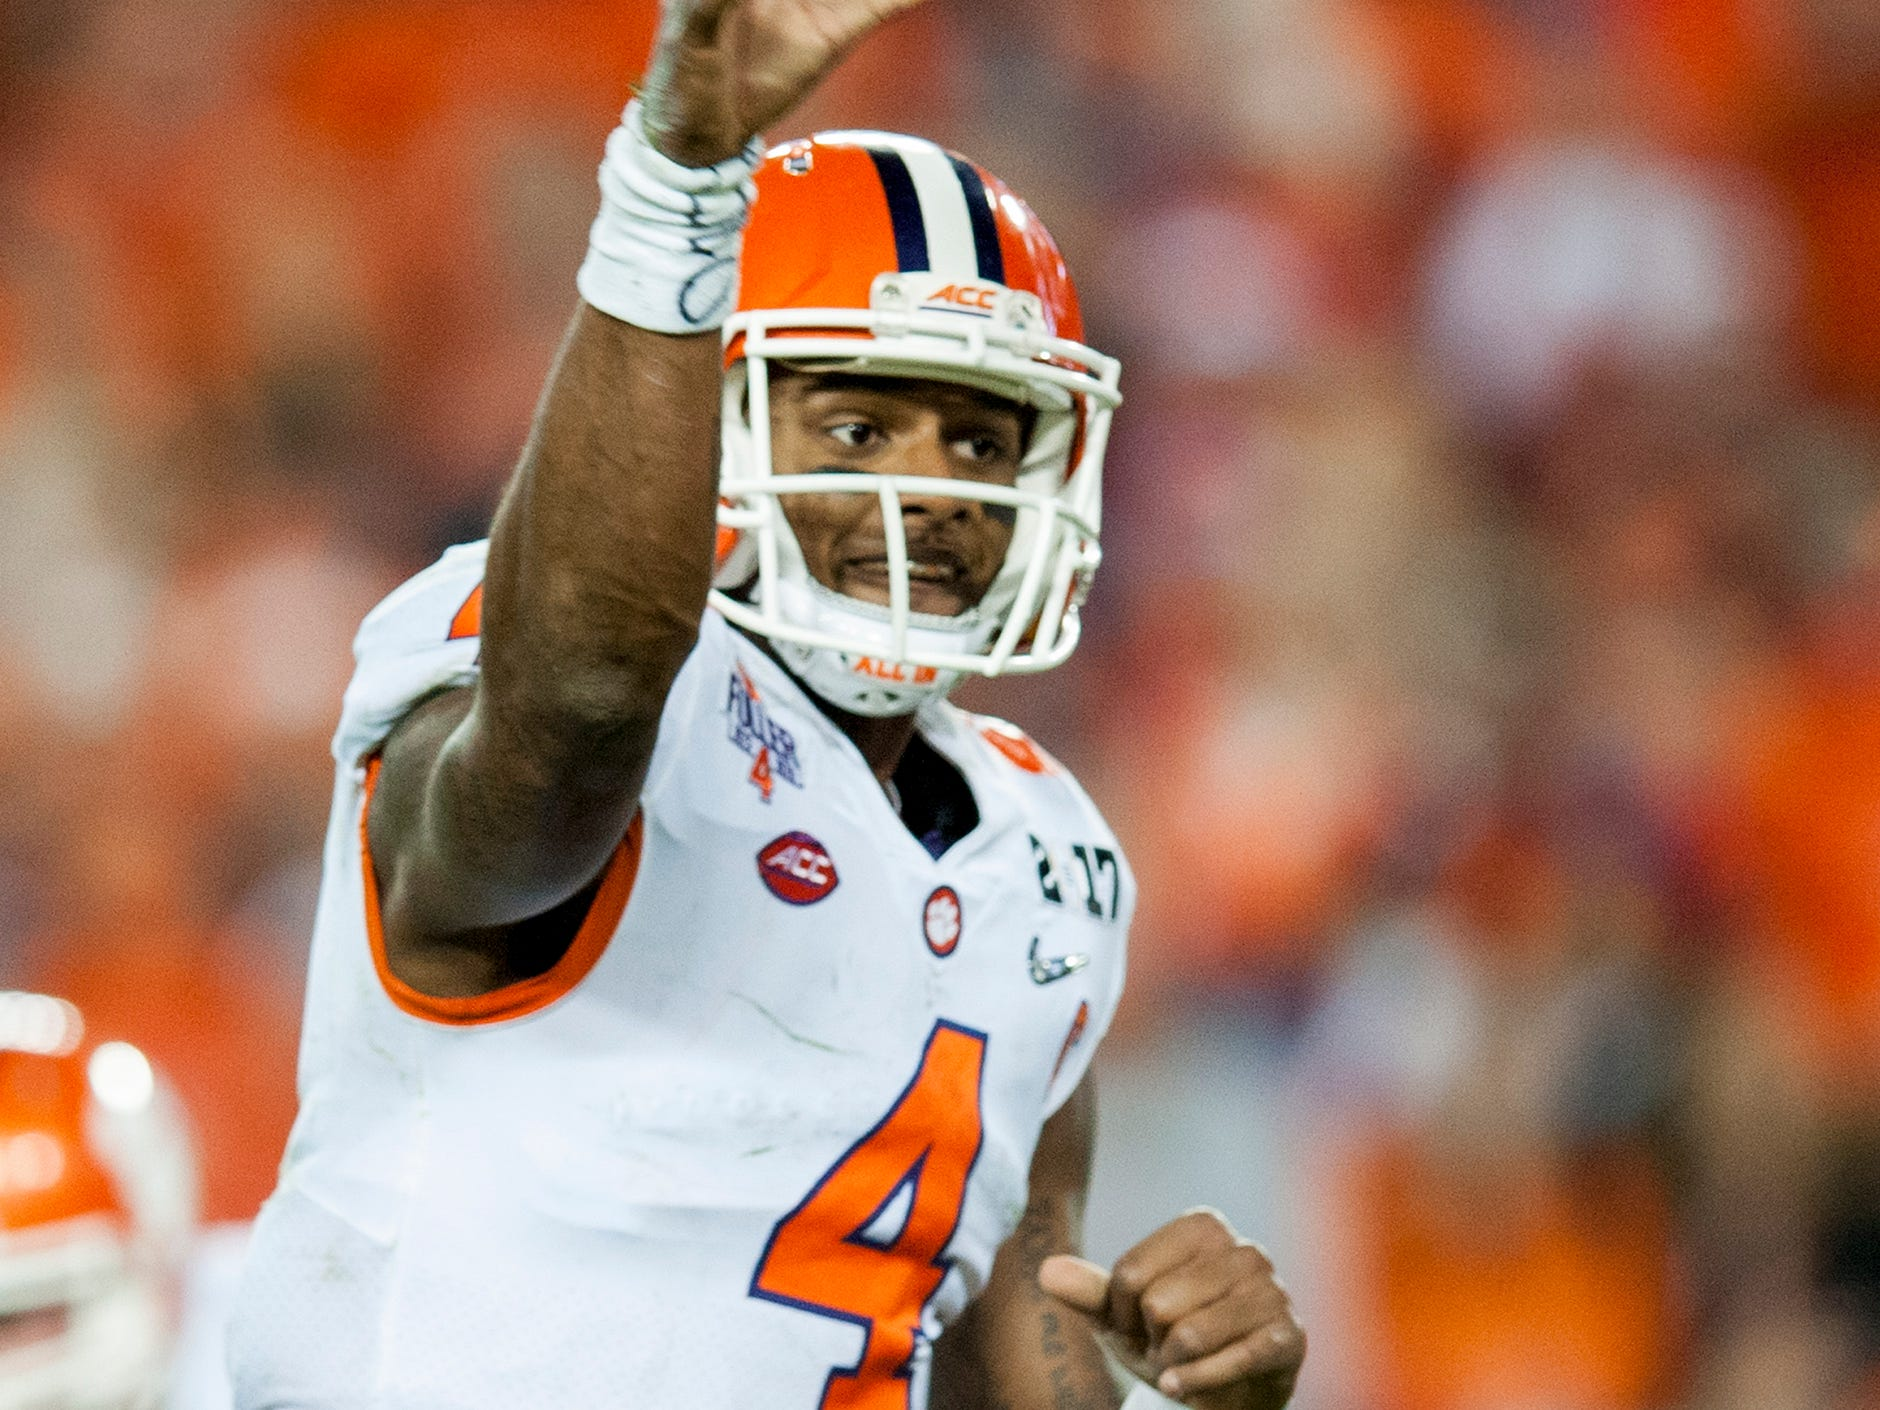 Clemson quarterback Deshaun Watson (4) throws against Alabama in second half action of the College Football Playoff National Championship Game at Raymond James Stadium in Tampa, Fla. on Monday January 9, 2017.